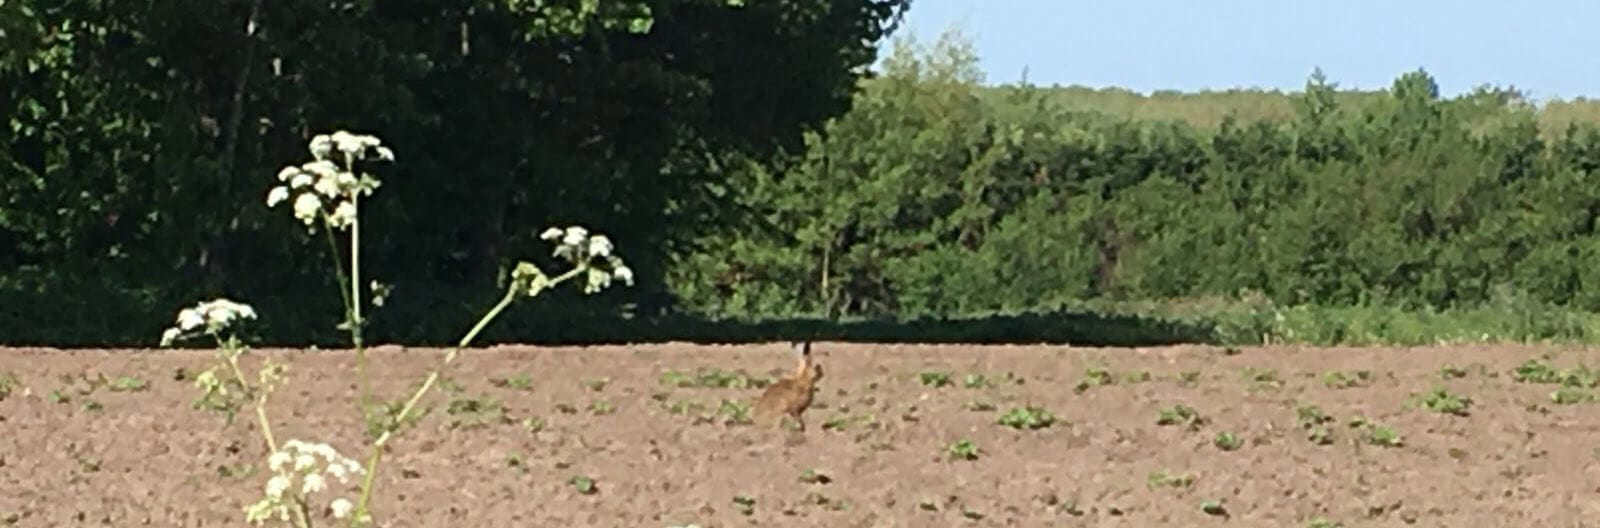 A Hare in the Lincolnshire Wolds